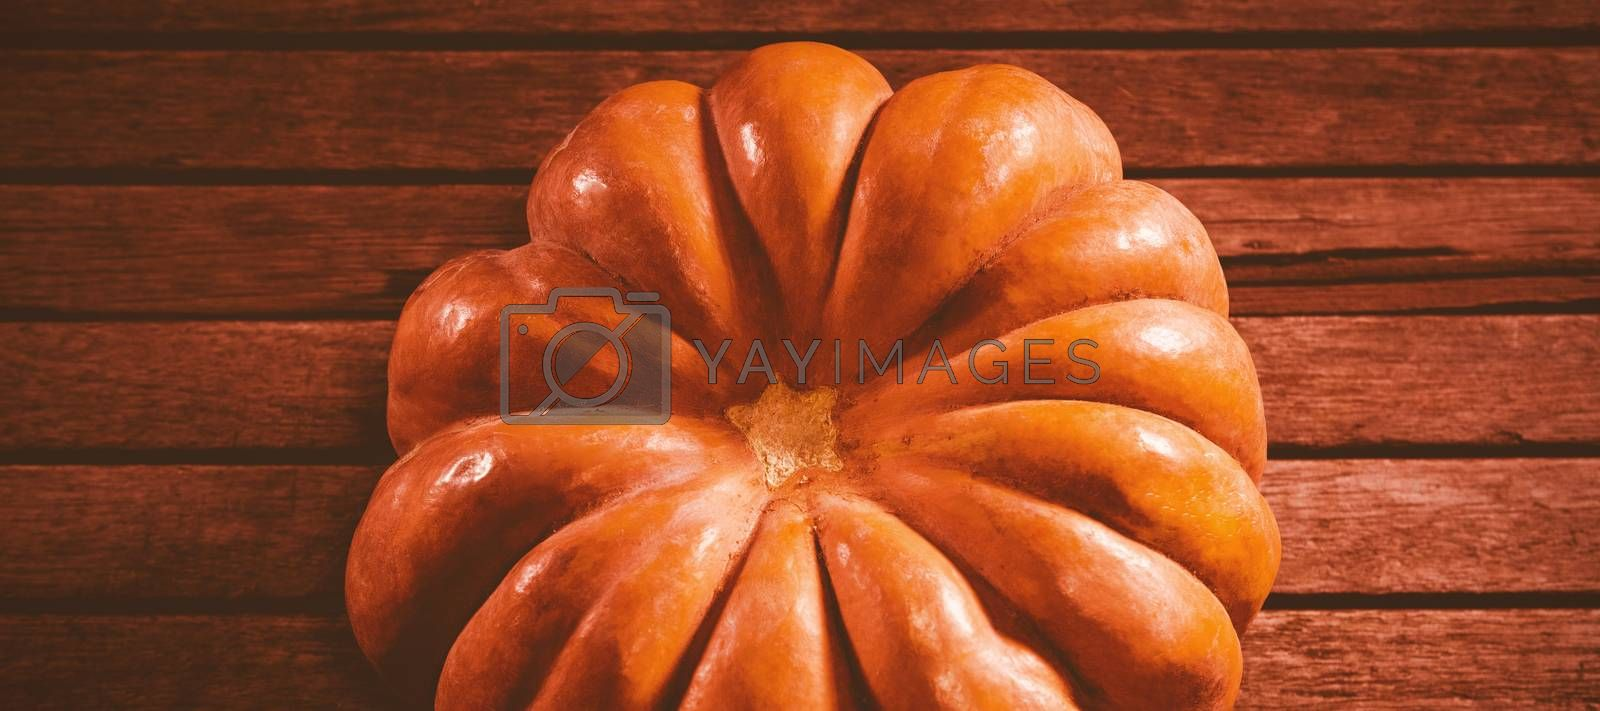 High angle view of pumpkin on wooden table during Halloween